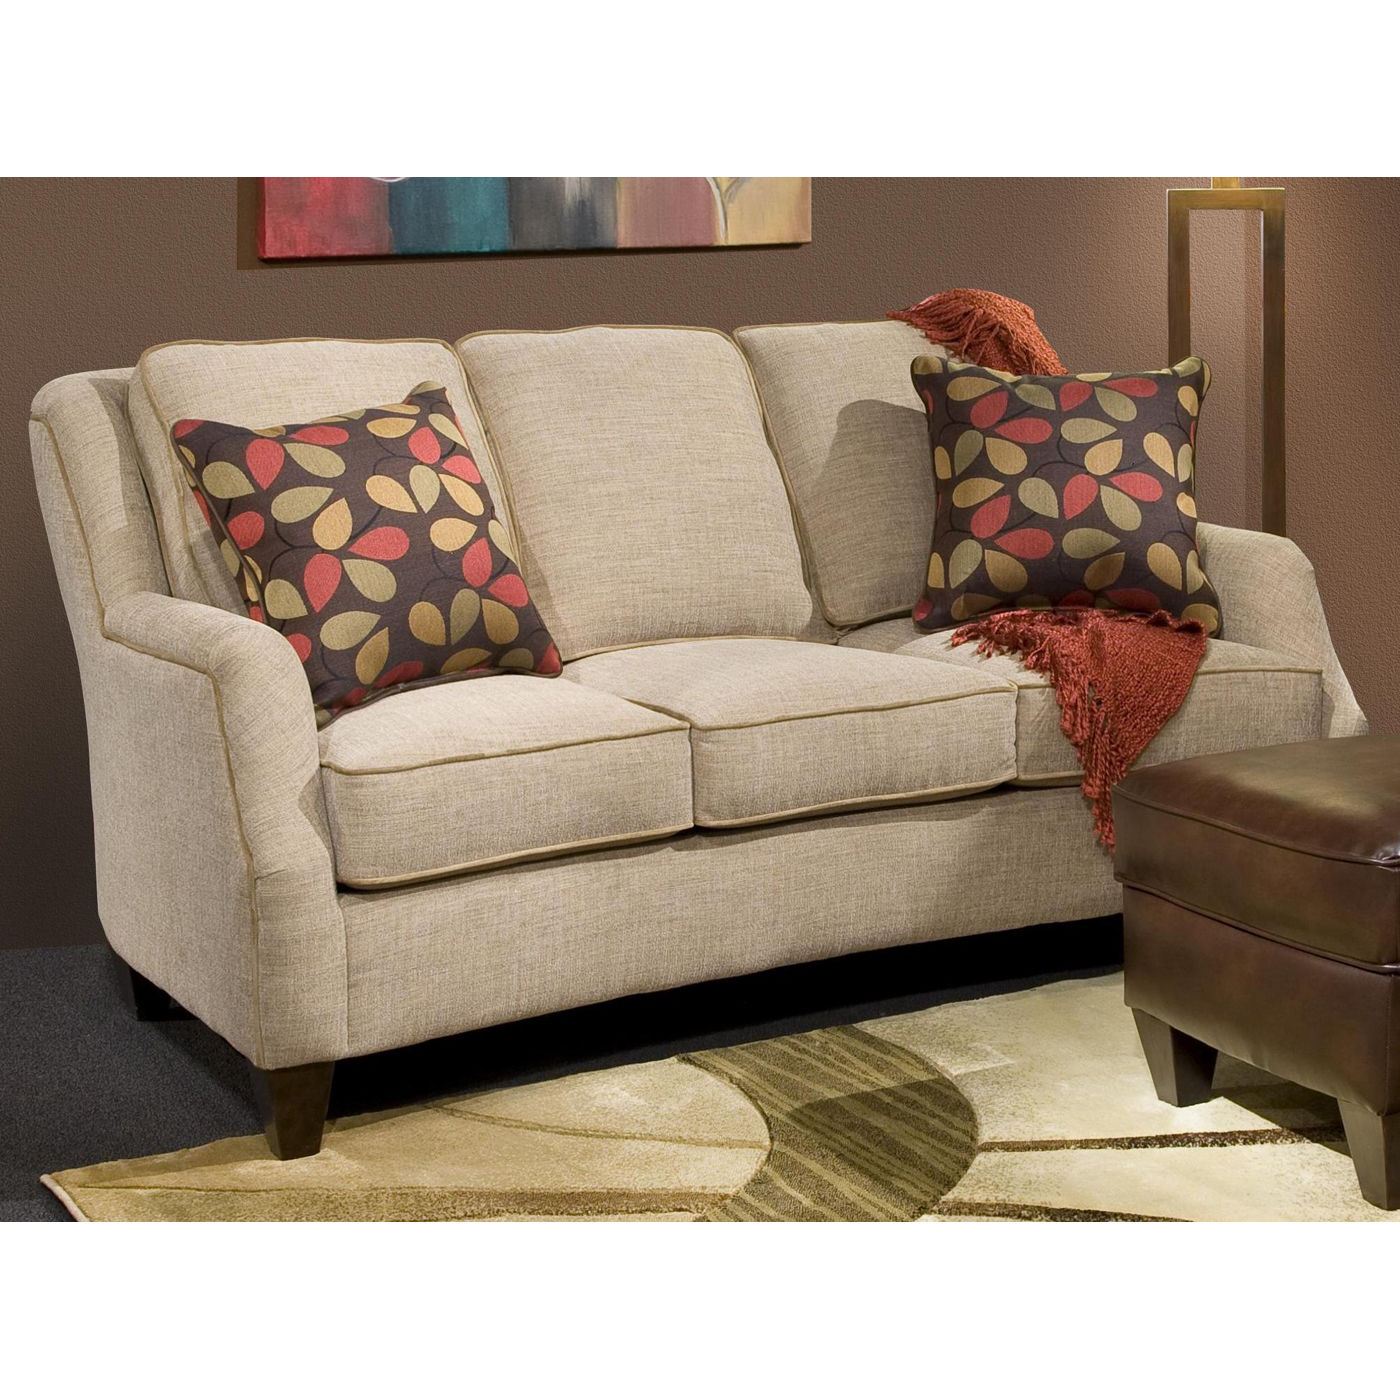 awesome crate and barrel apartment sofa ideas-Contemporary Crate and Barrel Apartment sofa Décor